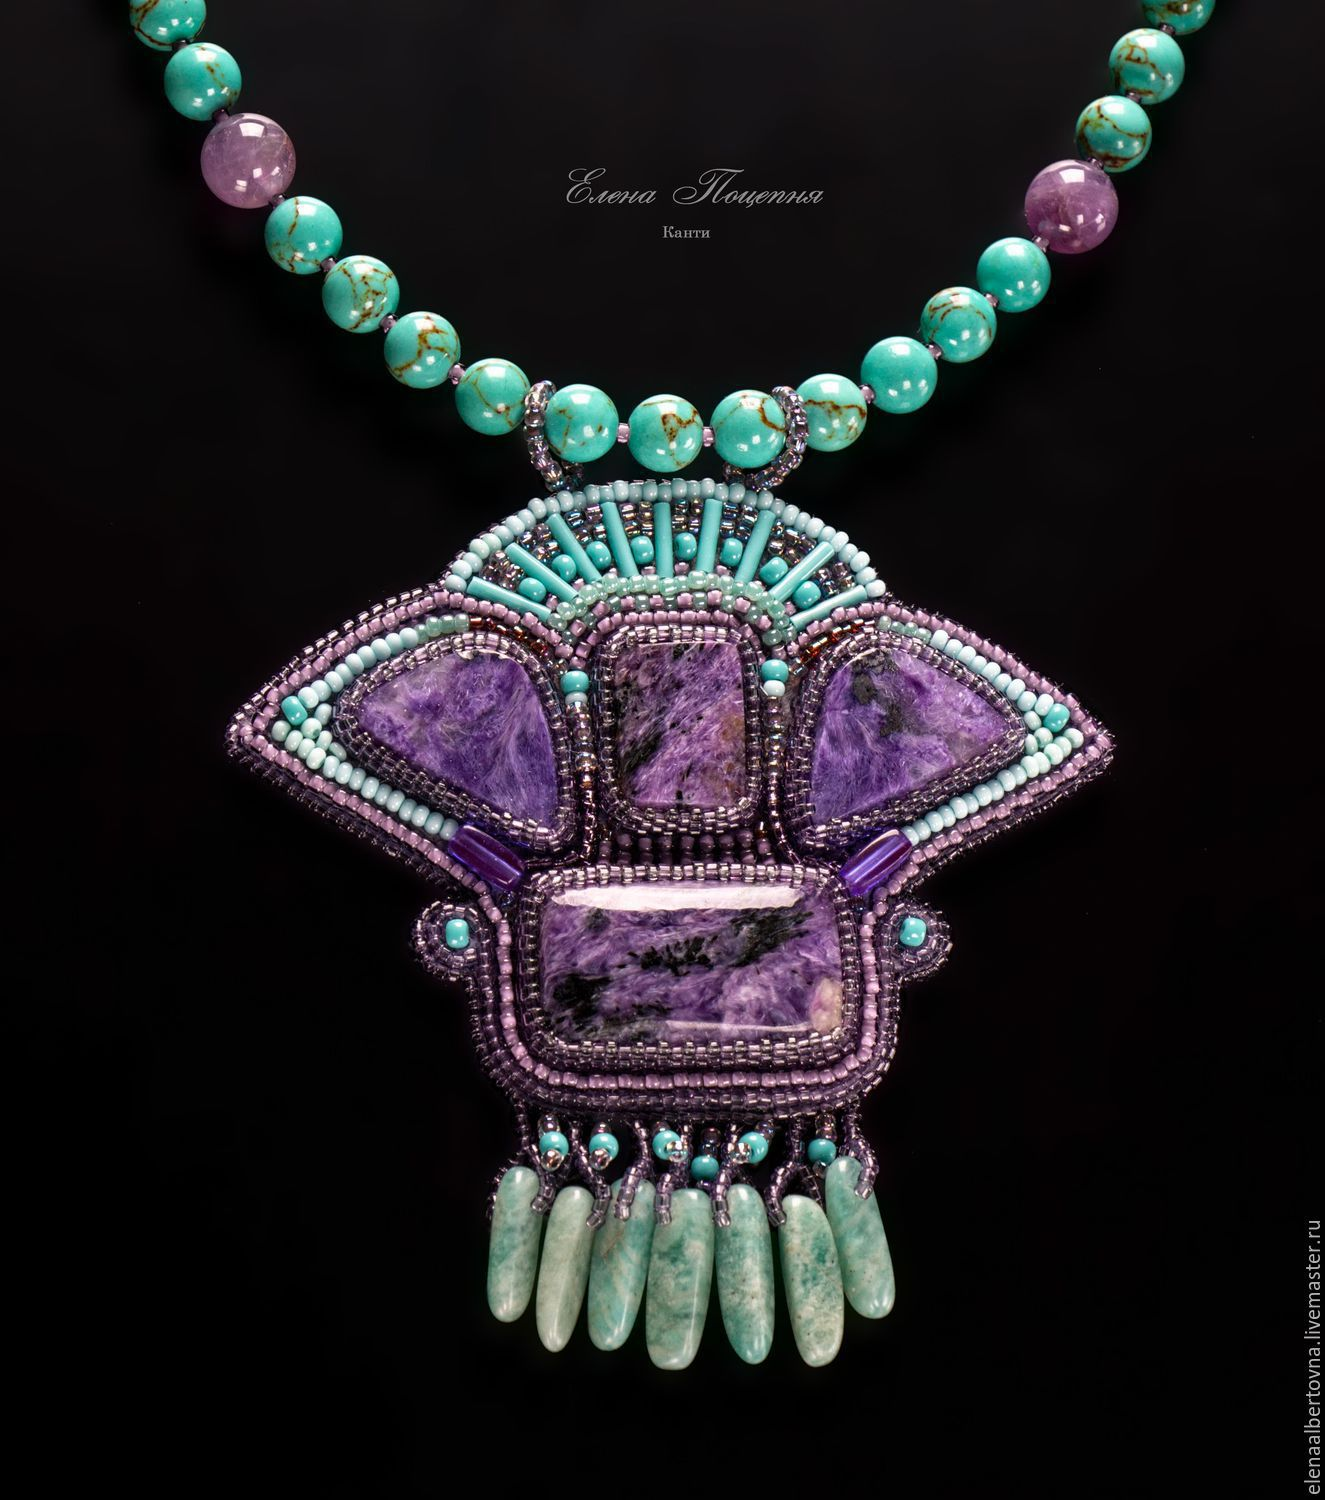 Purple turquoise necklace turquoise beads kanti purple shop necklace turquoise beads kanti purple necklace handmade fair masters handmade buy necklace beads canti from natural stones and aloadofball Gallery